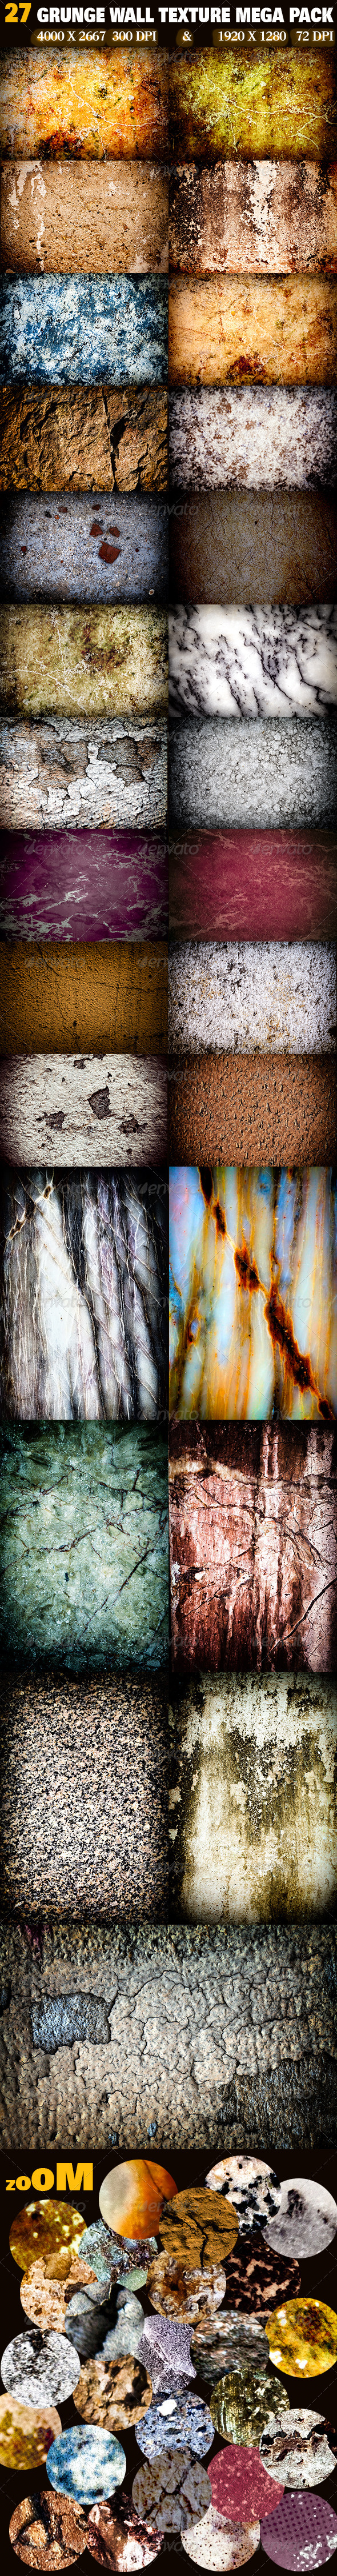 GraphicRiver 27 Grunge Wall Texture Mega Pack 3295787